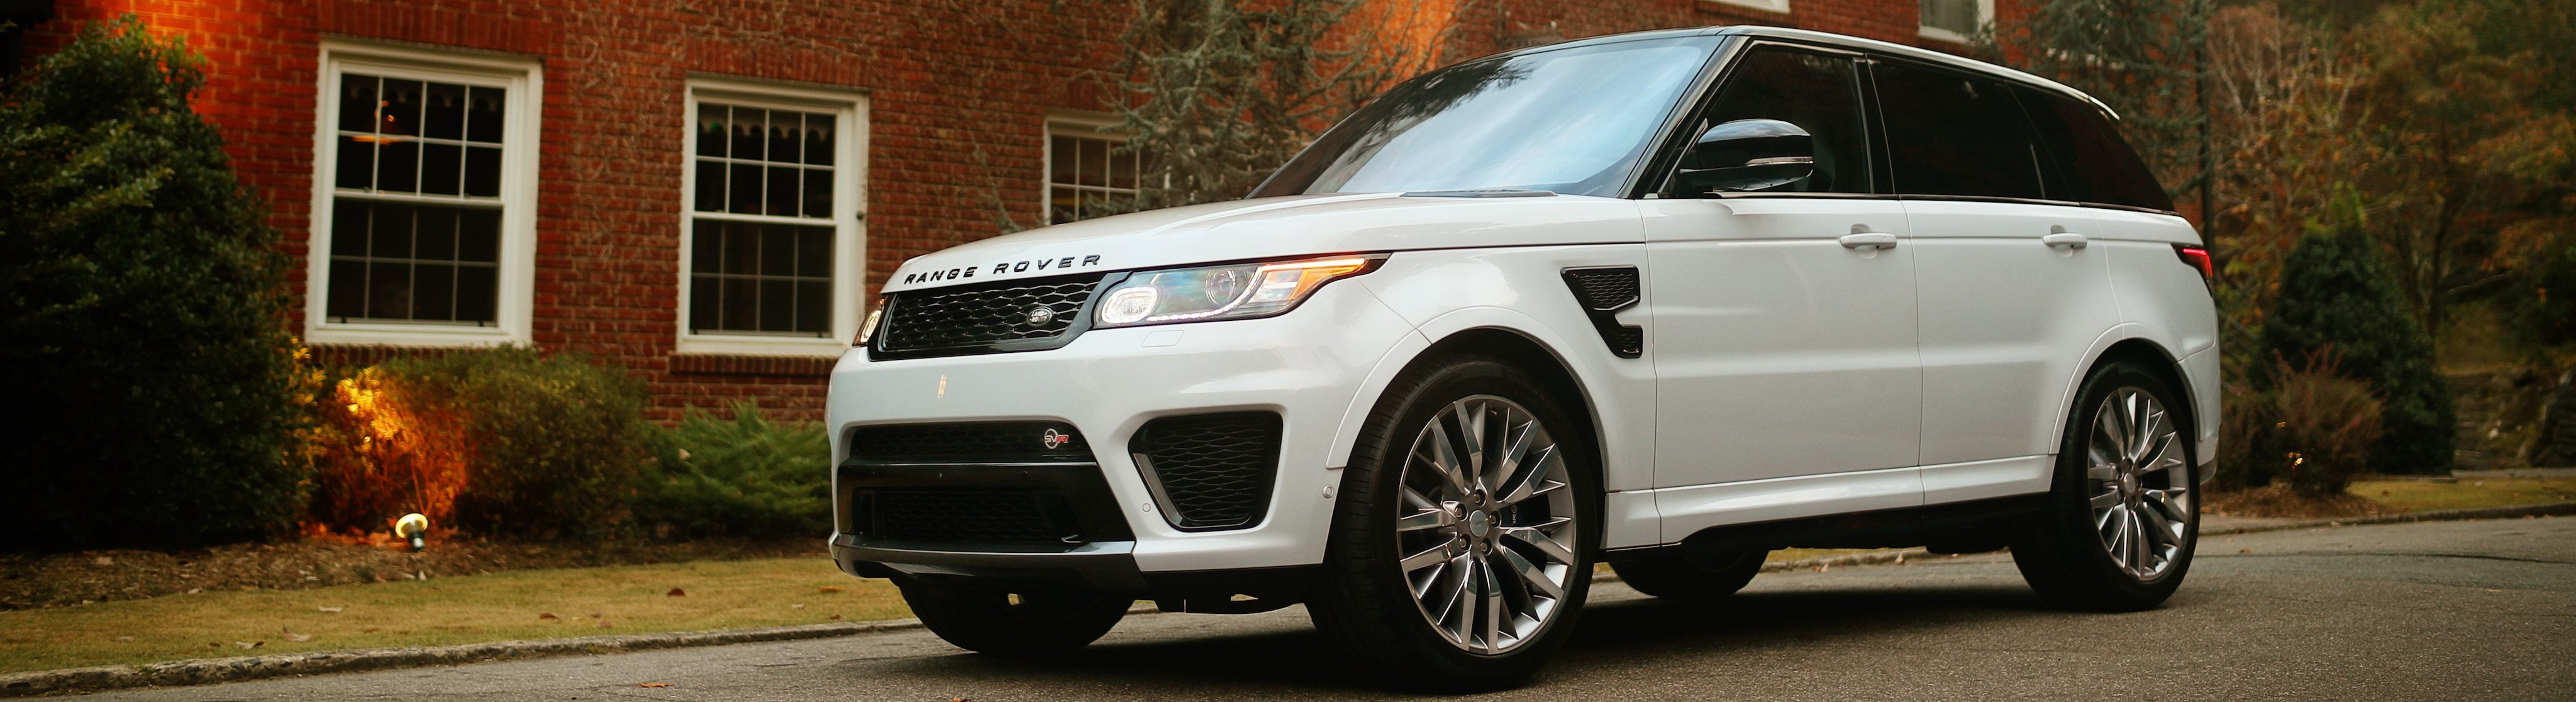 Buy or Lease New Range Rover Sport Boston Norwood Brookline MA